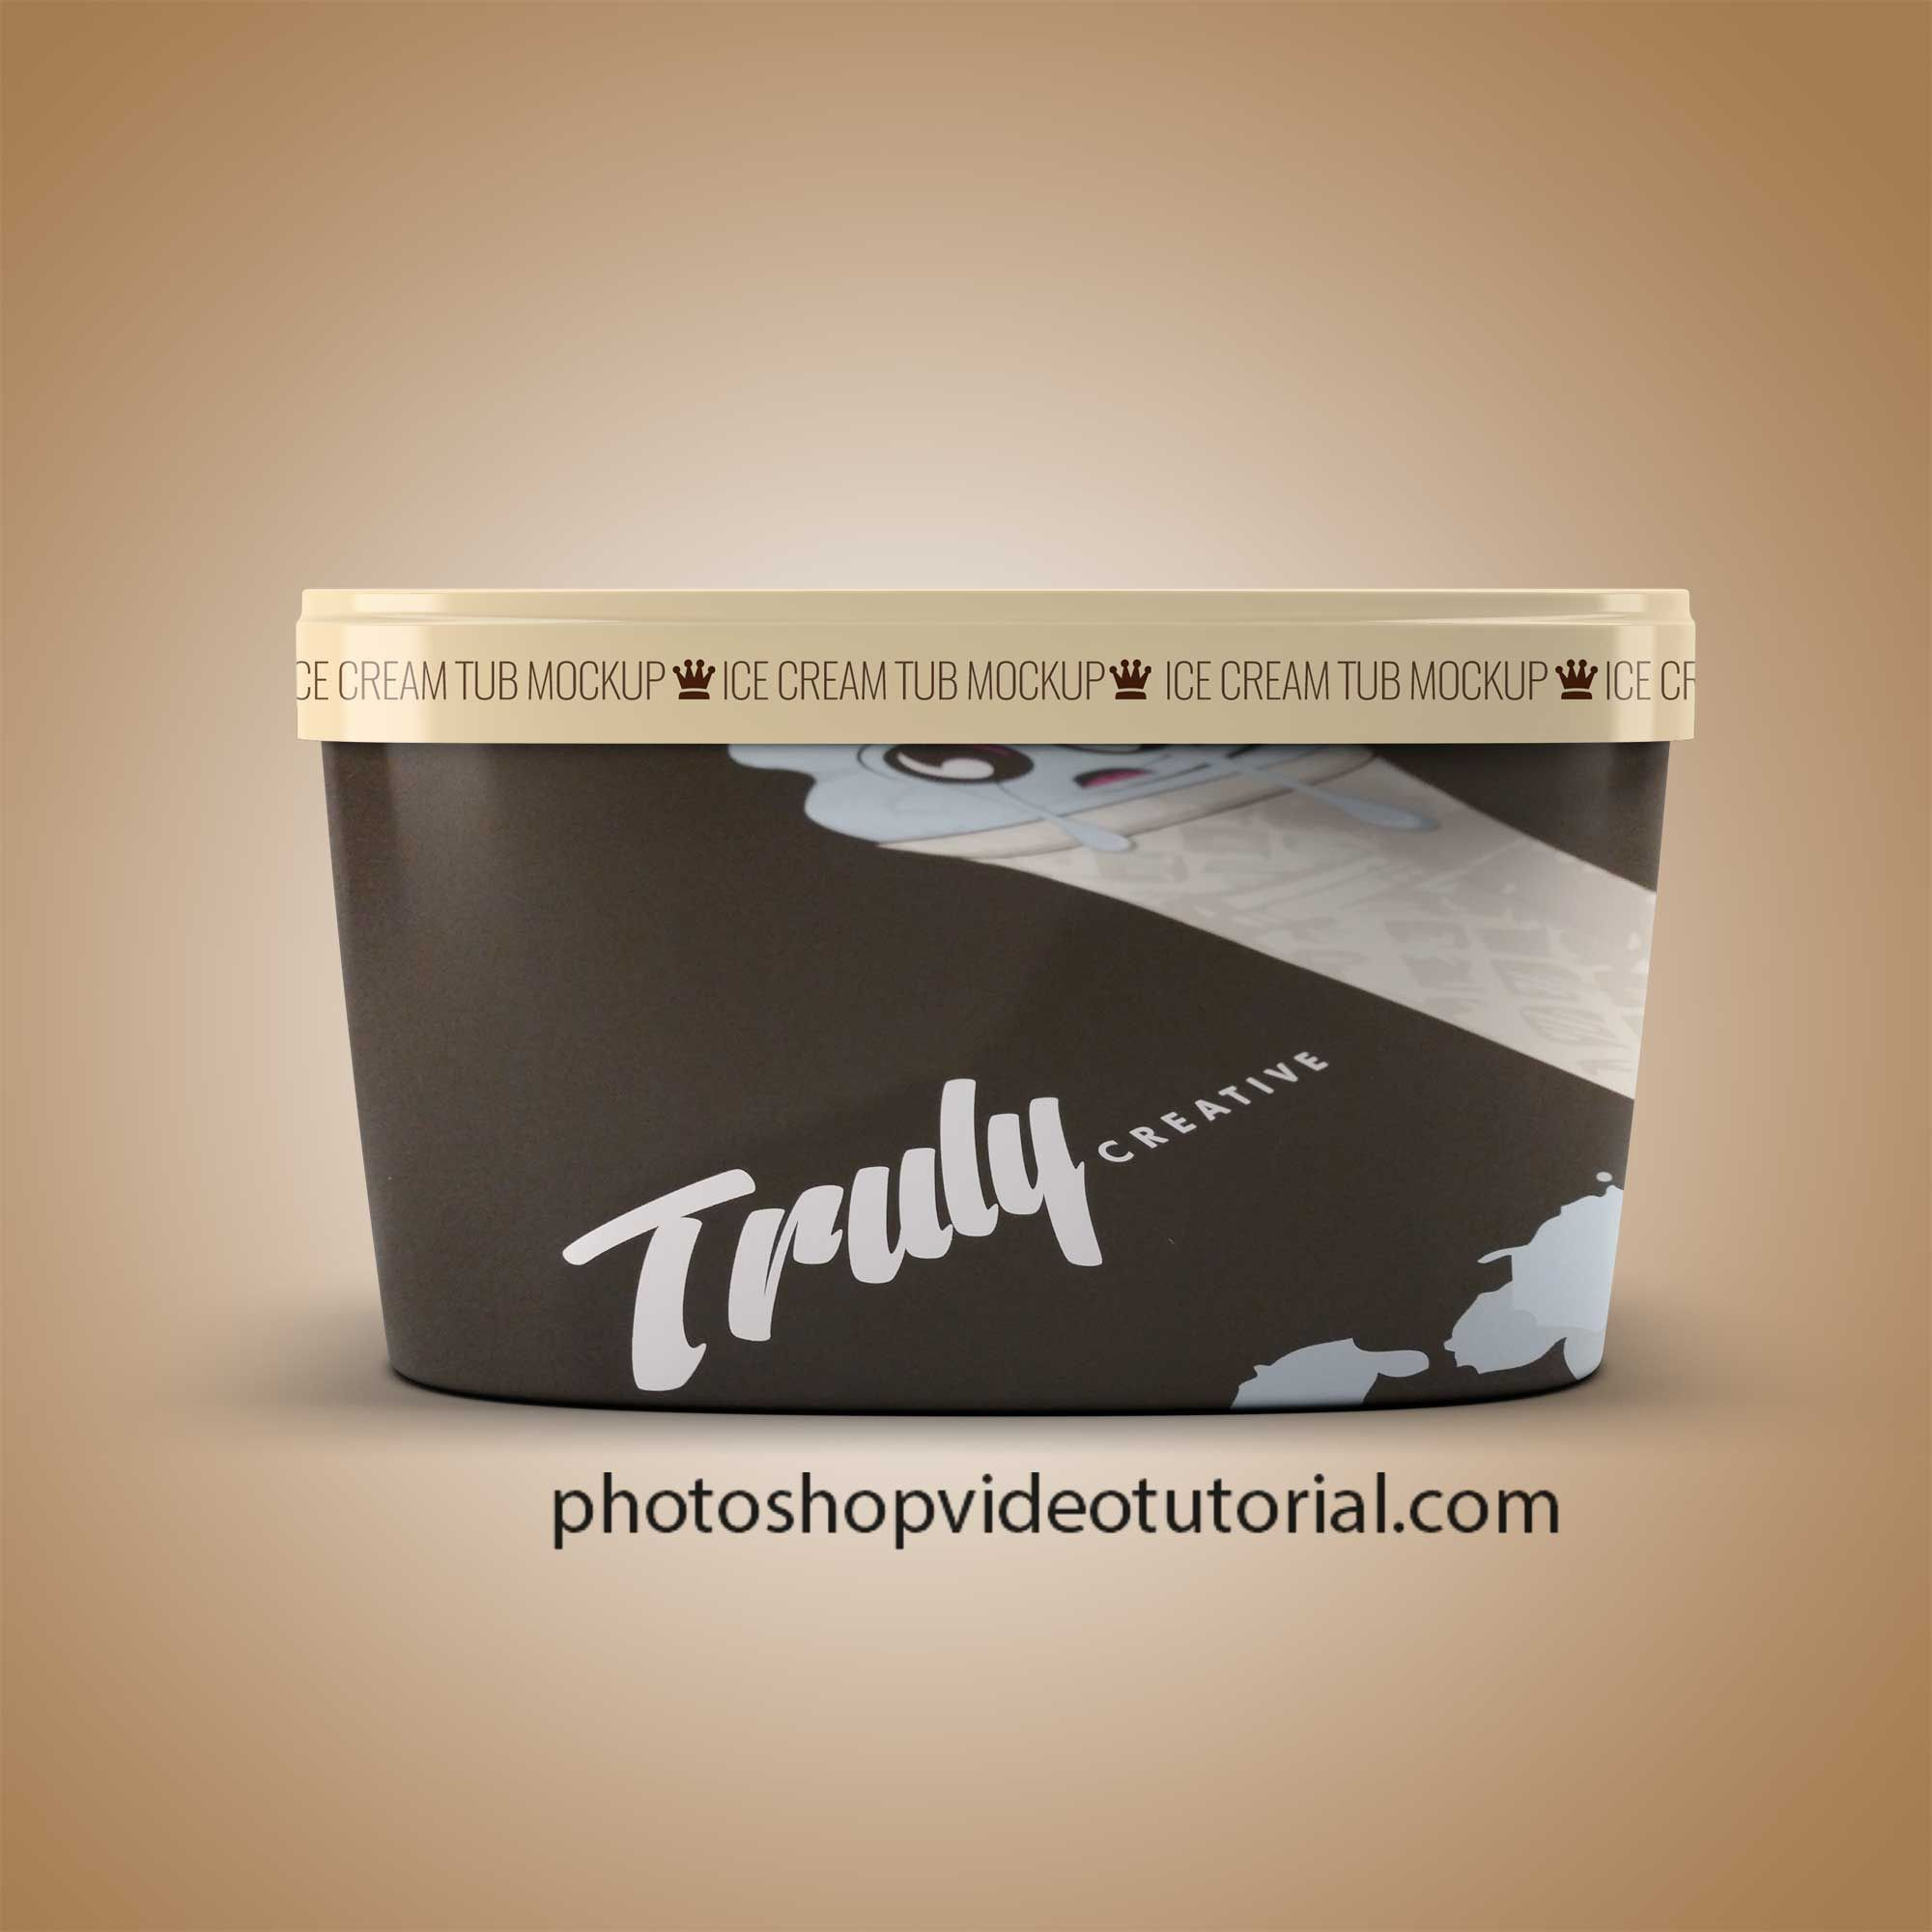 Download Free Ice Cream Container Mockup Branding Containermockup Download Downloadpsd Free Freemockup Freepsd Freebi Mockup Logo Design Mockup Mockup Free Psd